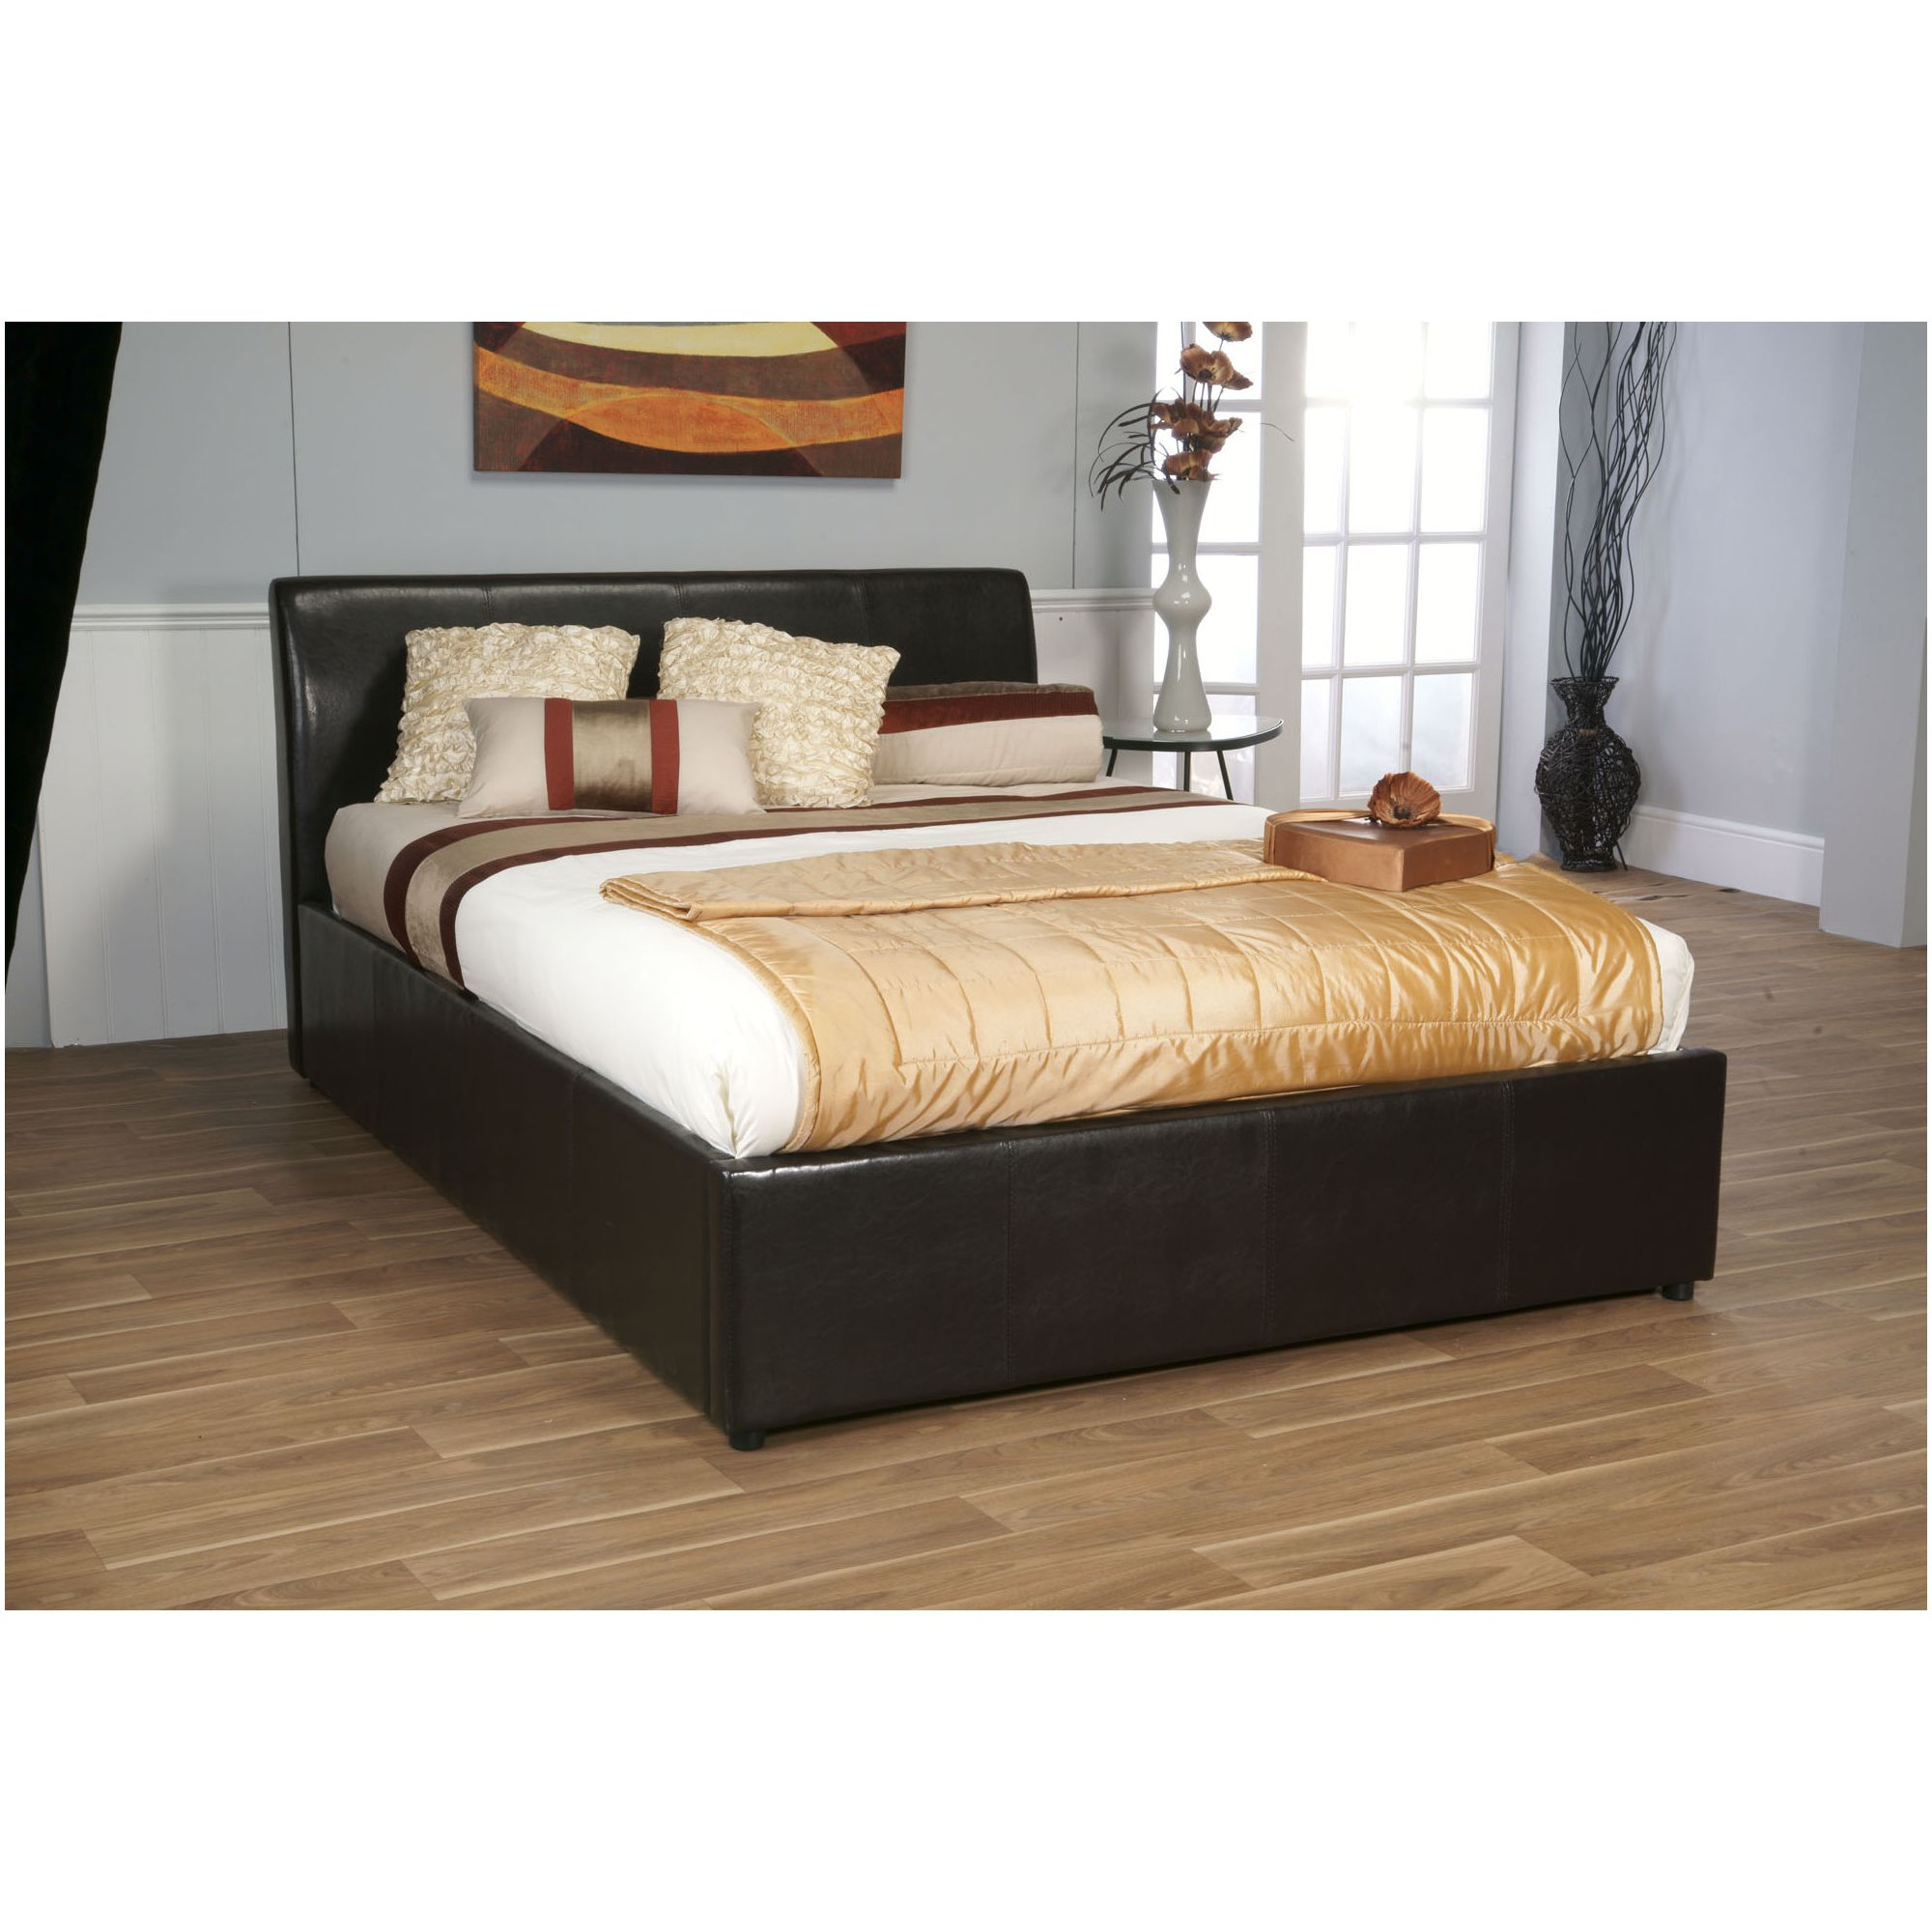 Limelight Galaxy Bedstead with Storage - Super King at Tesco Direct